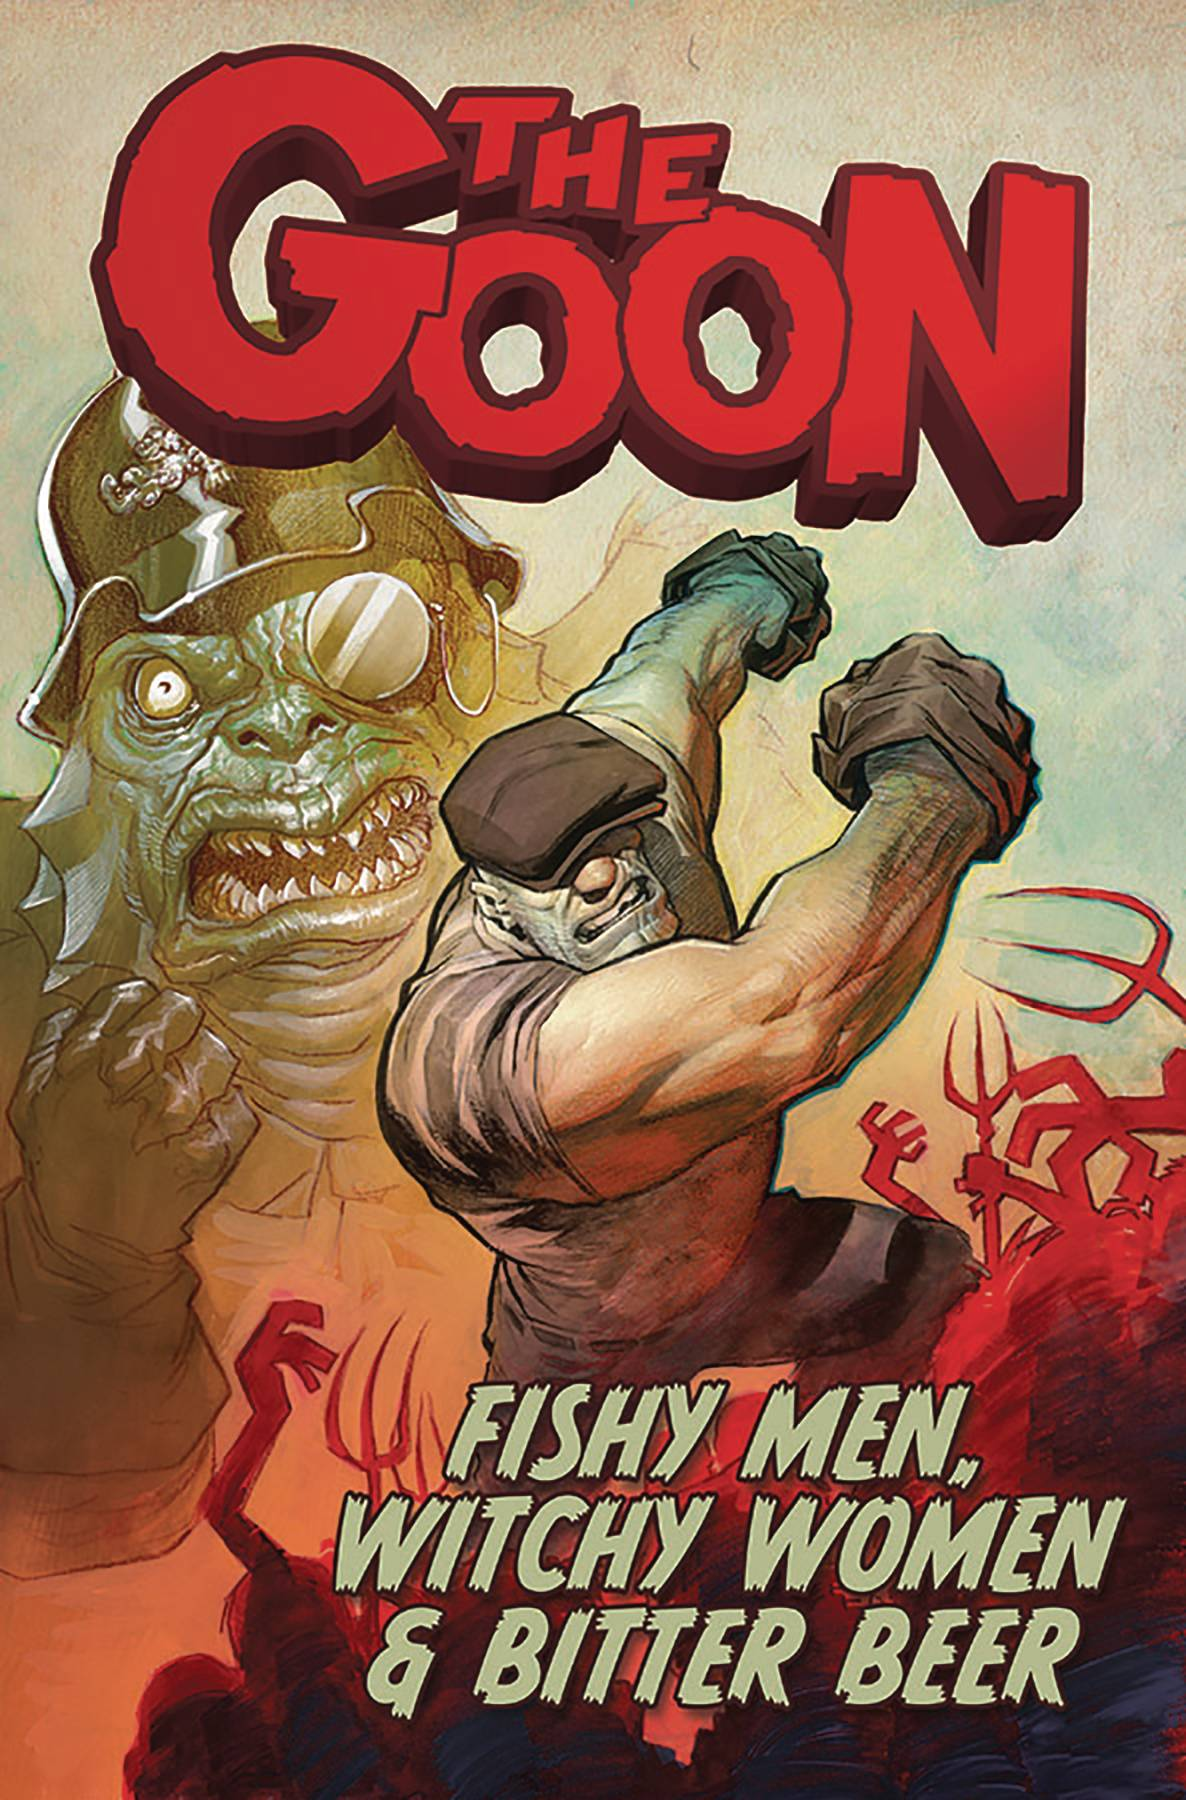 GOON TP VOL 03 FISHY MEN WITCHY WOMEN & BITTER BEER